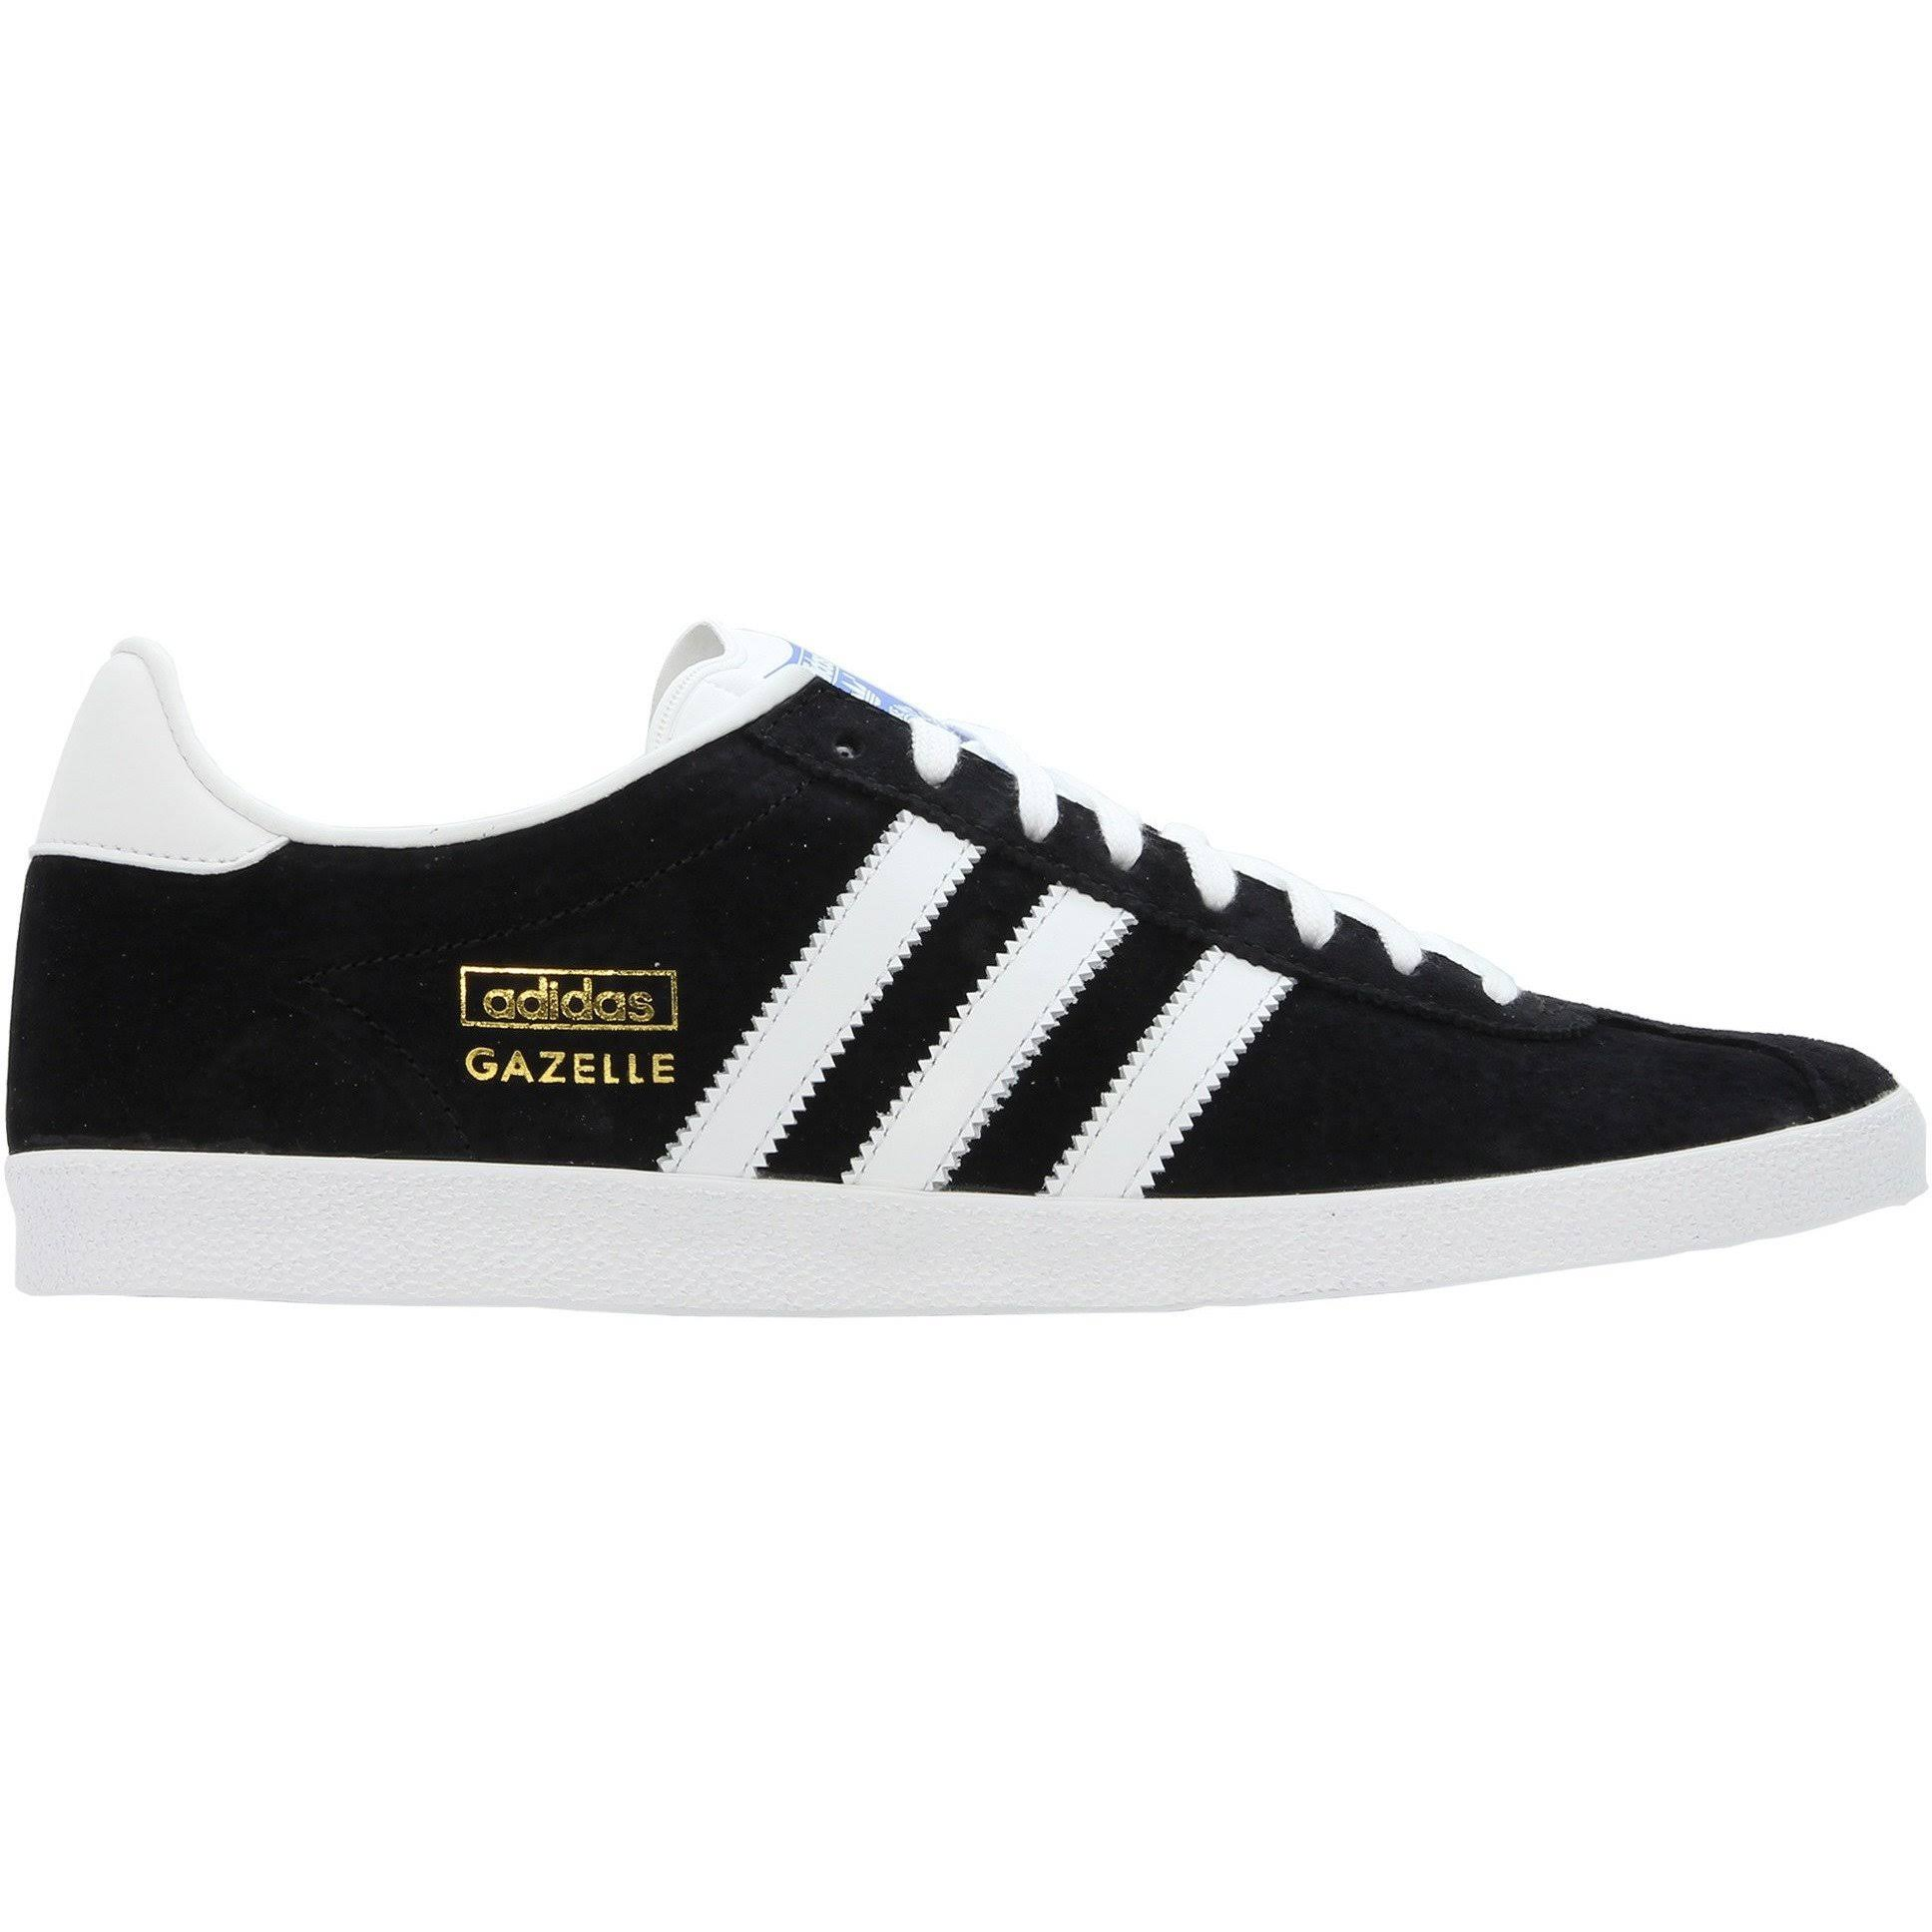 (10) Adidas Originals Gazelle OG - Black